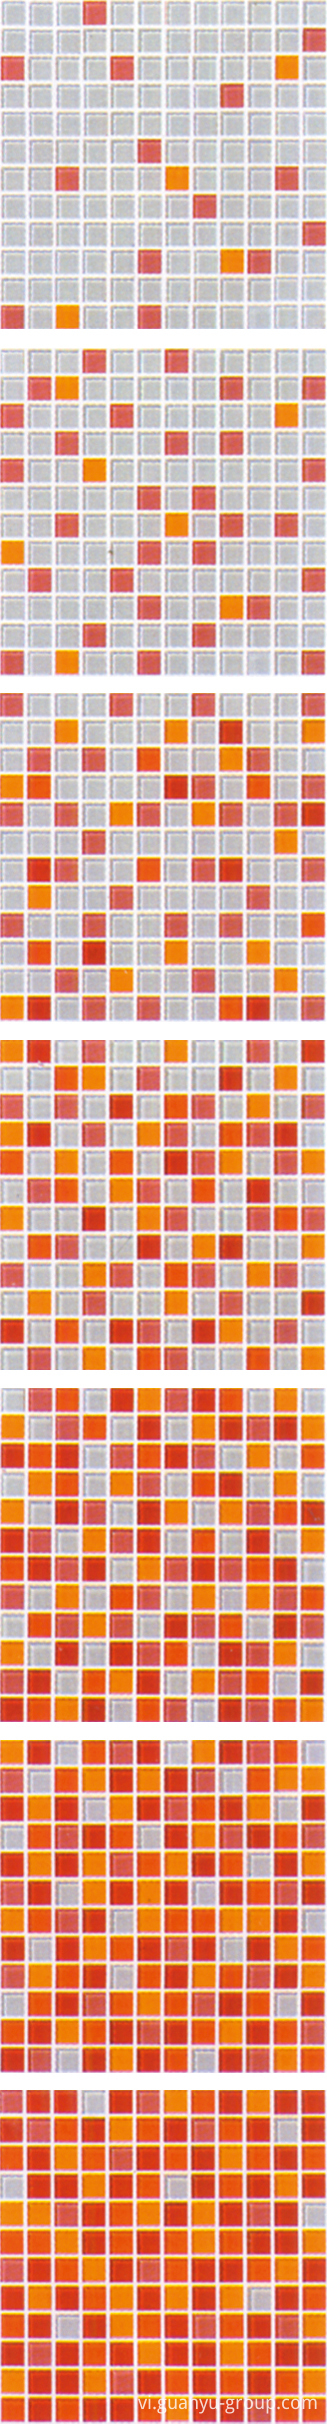 Orange Gradual Change Glass Mosaic